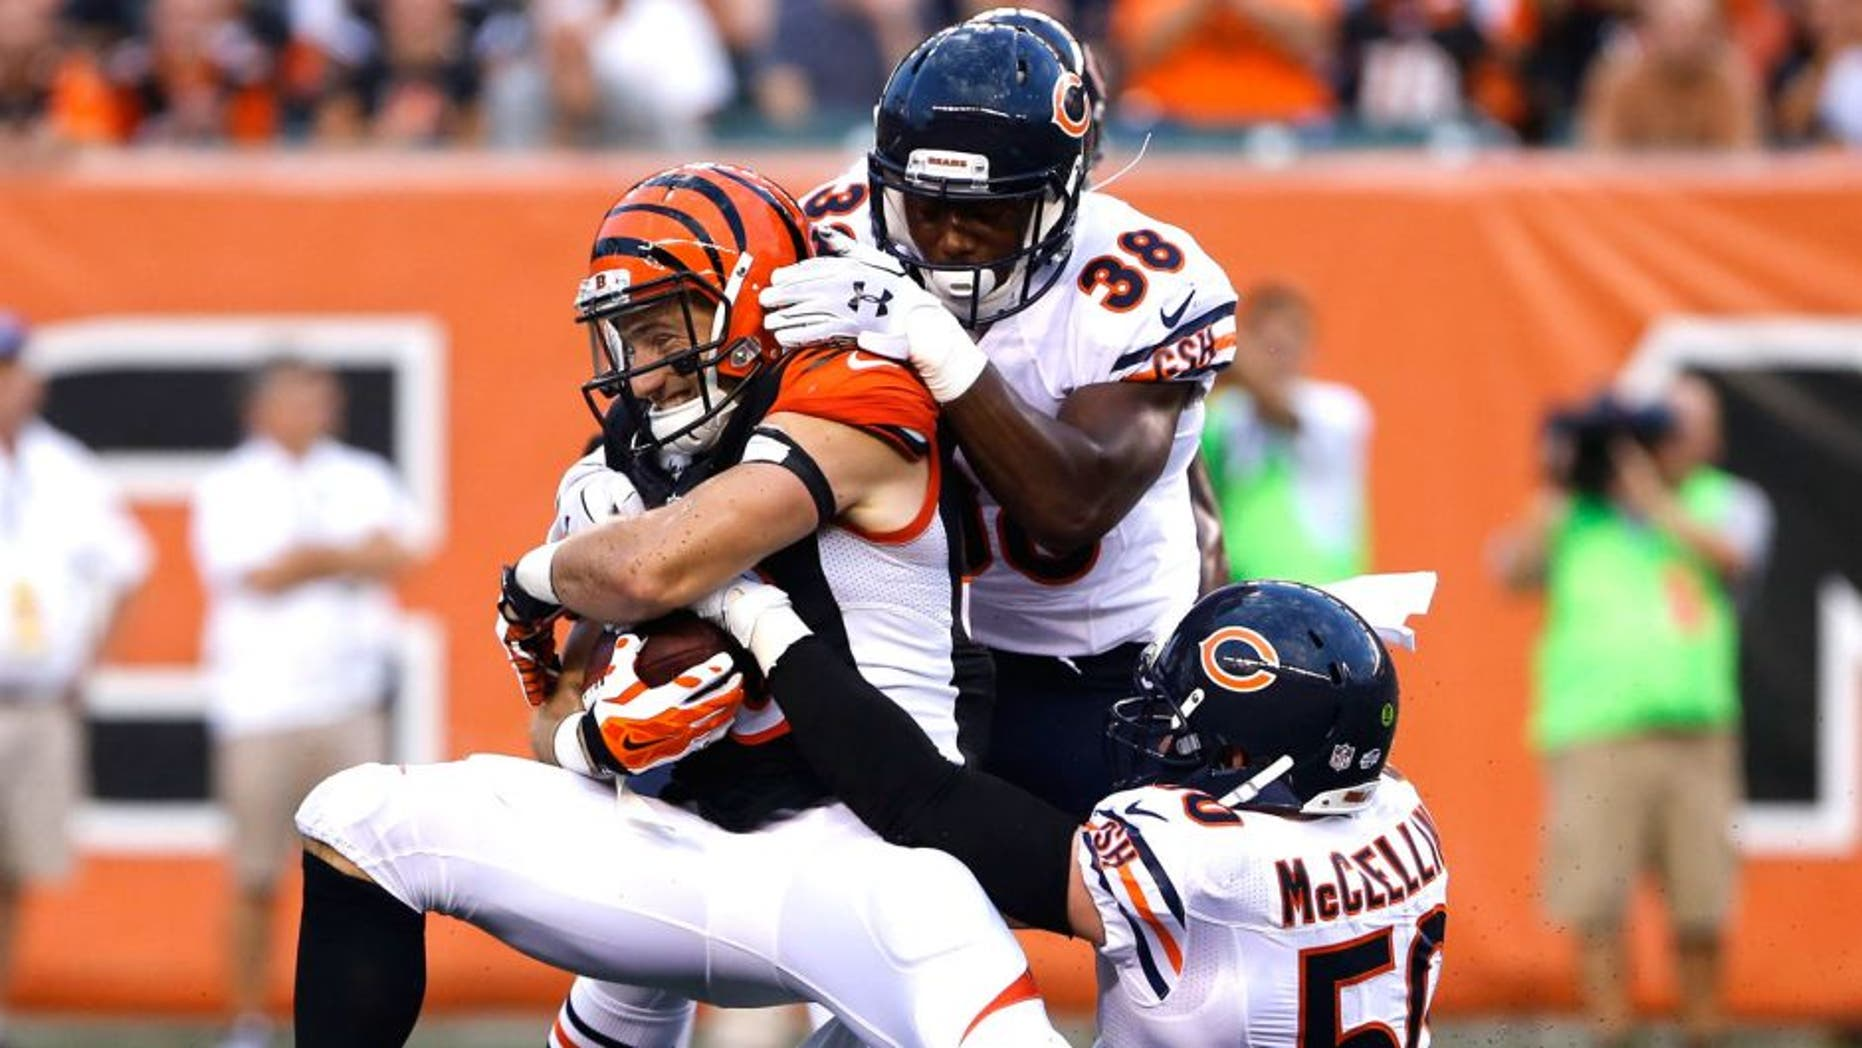 Aug 29, 2015; Cincinnati, OH, USA; Cincinnati Bengals running back Rex Burkhead (33) is tackled by Chicago Bears free safety Adrian Amos (38) and outside linebacker Shea McClellin (50) after making a catch in the first half in a preseason NFL football game at Paul Brown Stadium. Mandatory Credit: Aaron Doster-USA TODAY Sports